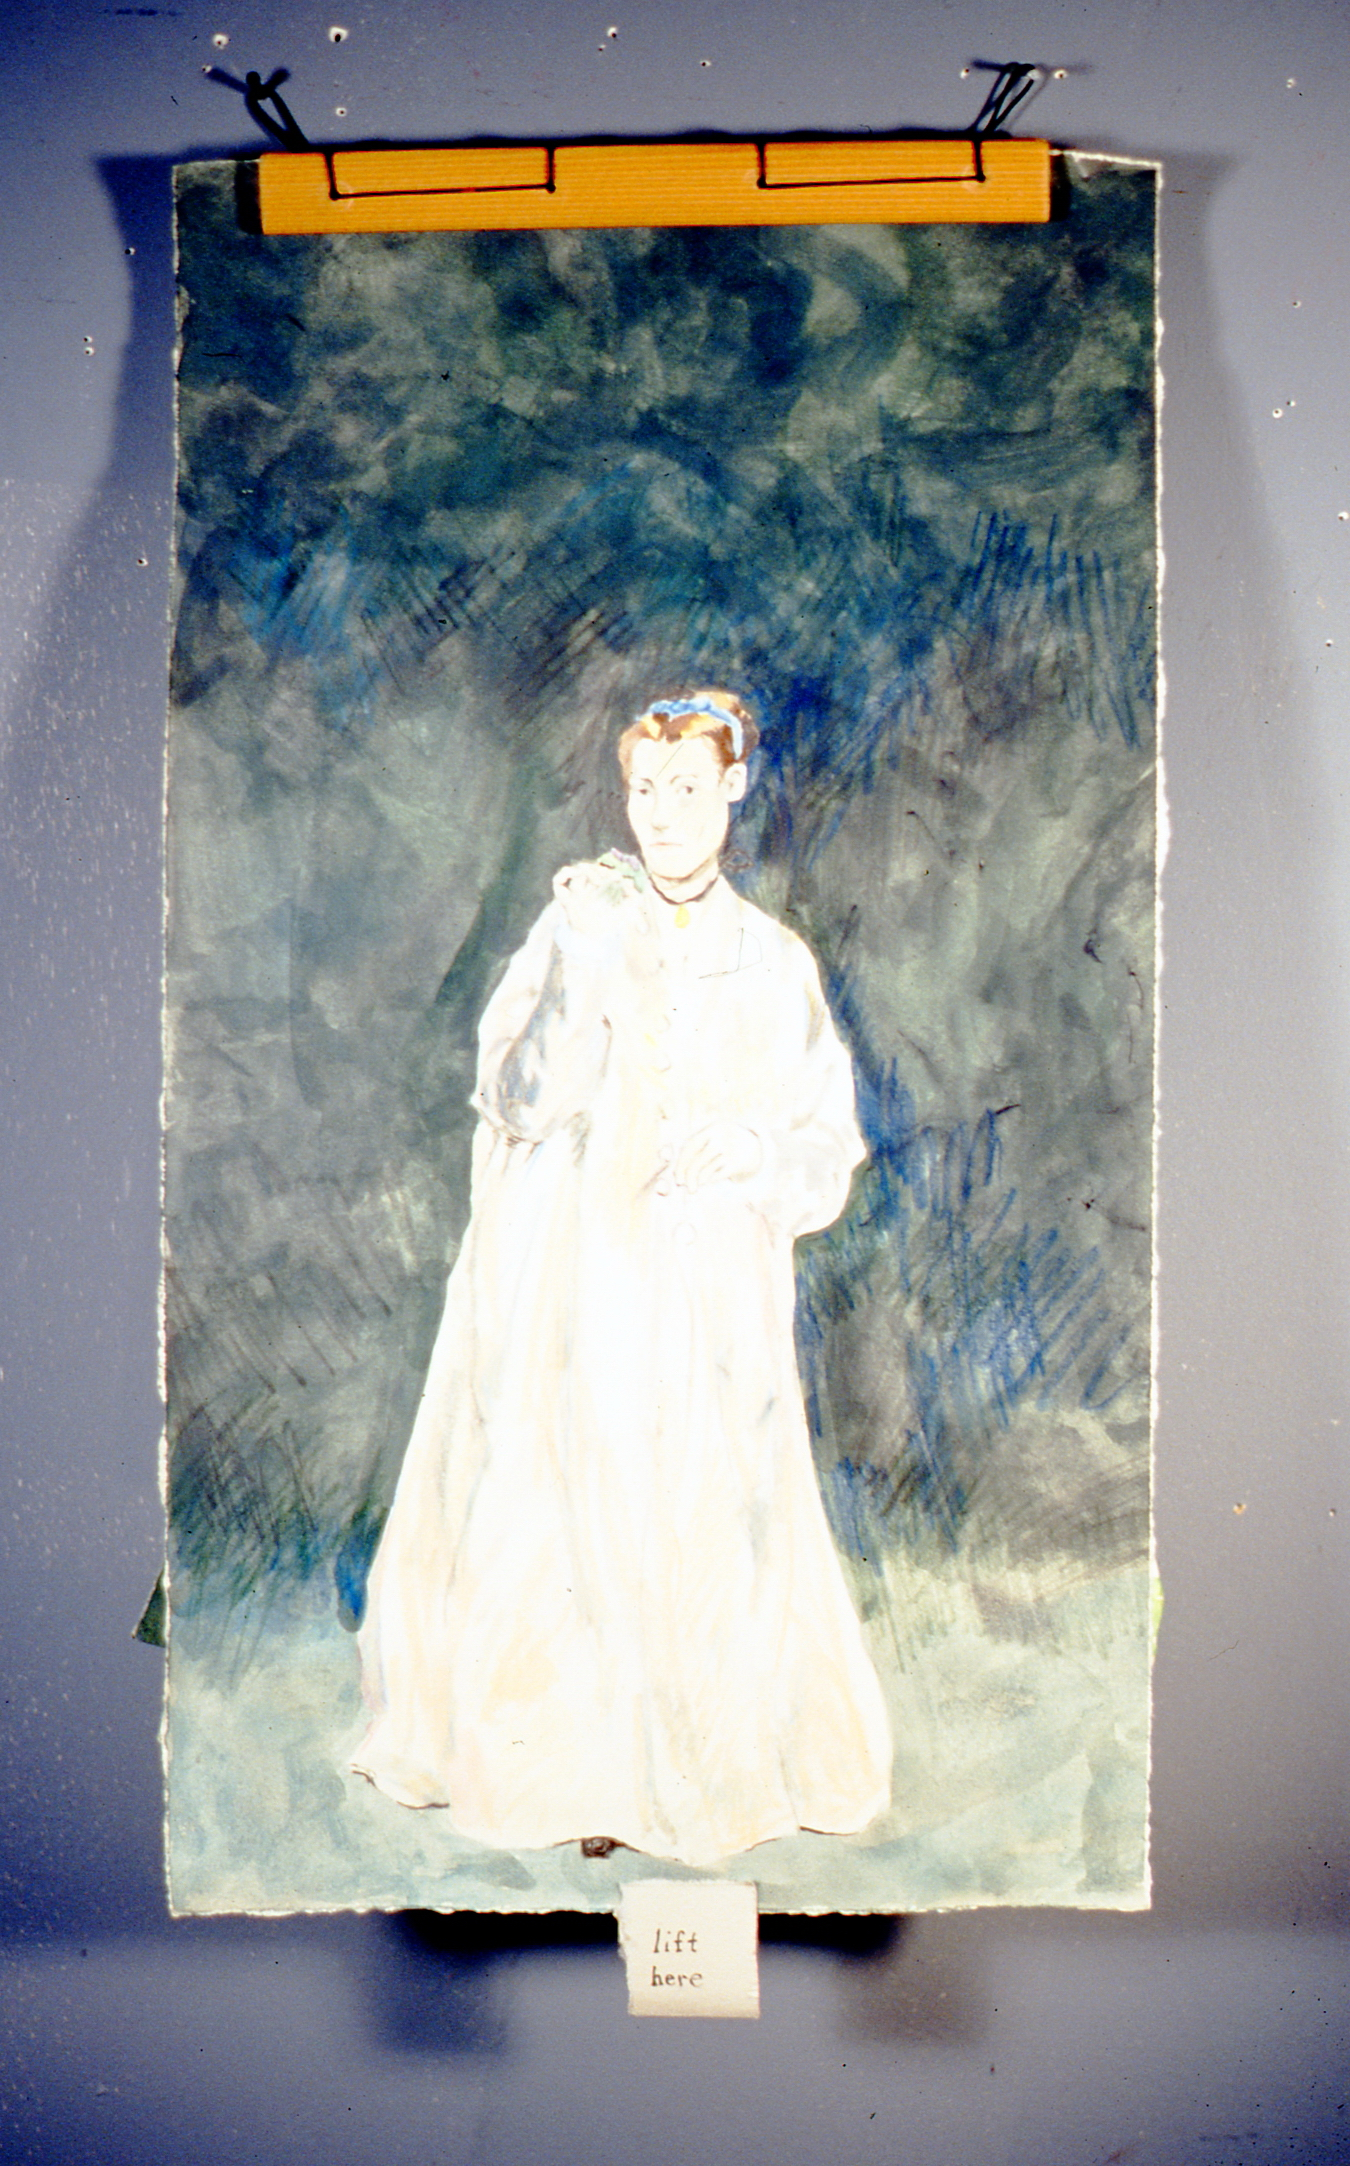 """Woman with a Flower , 2000, Richard Motchman, mixed media on paper, 17"""" x 9 1/4"""", 2000.02.02, gift of the artist"""